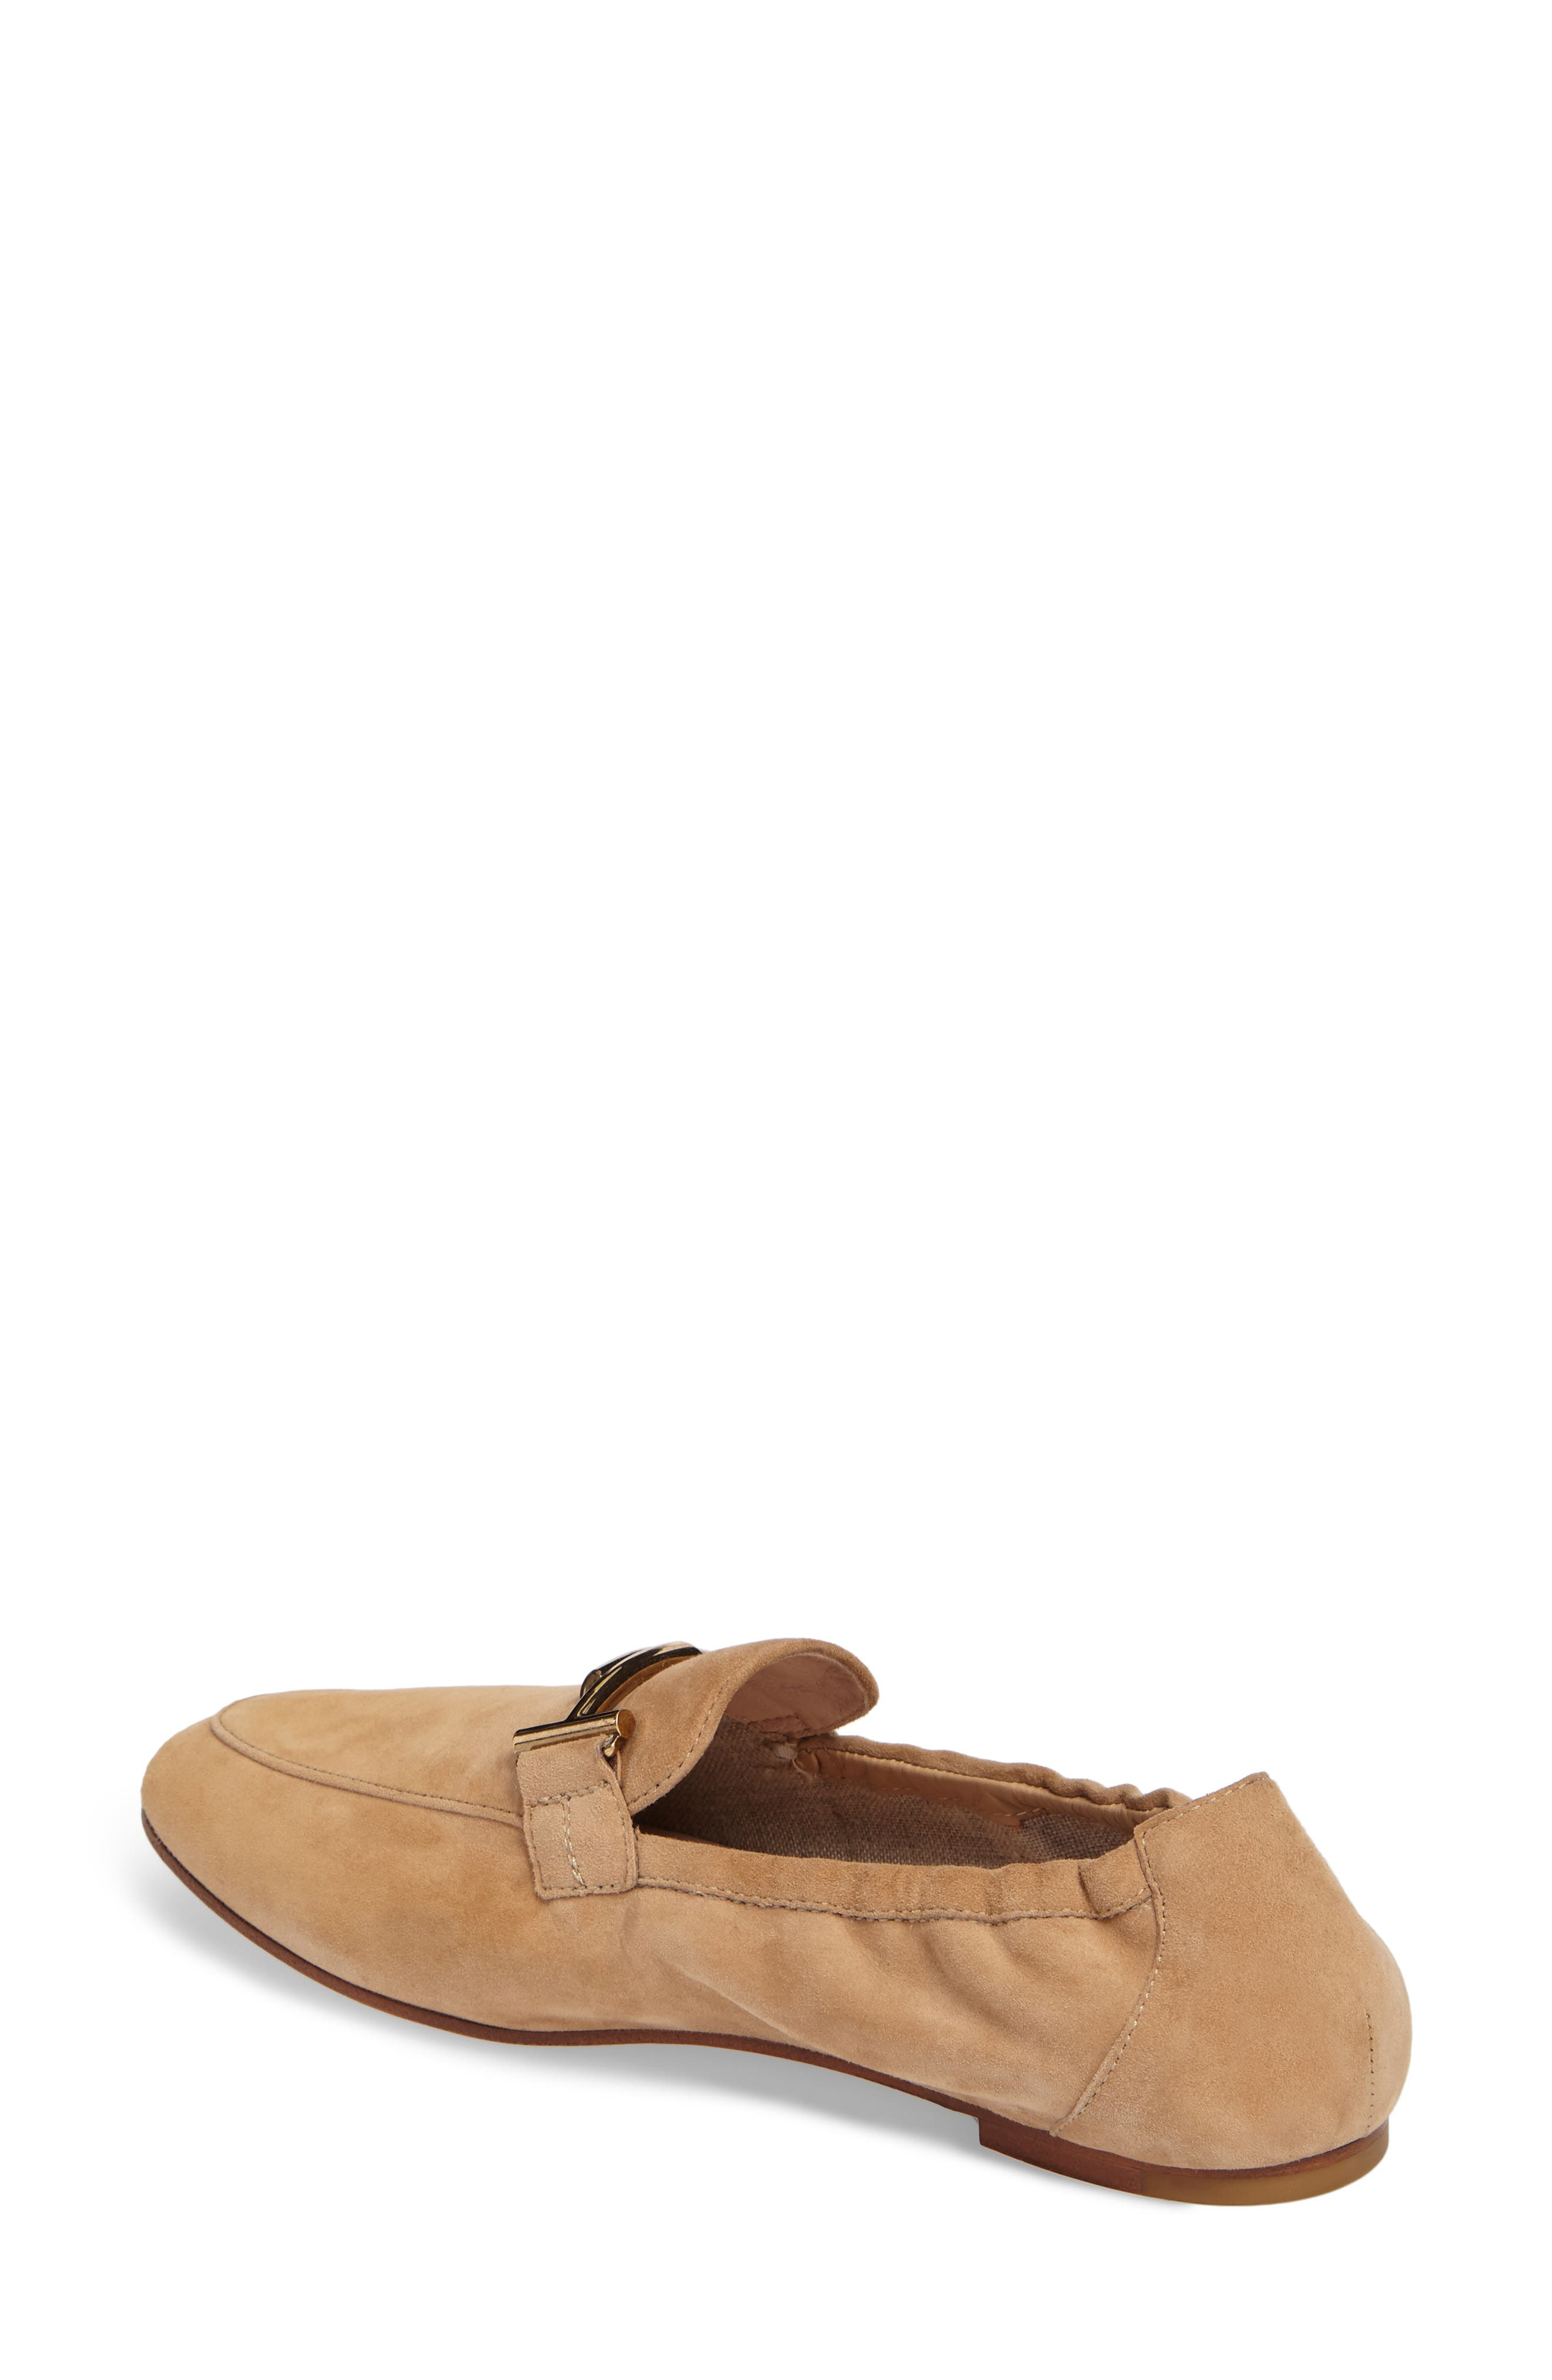 Double T Scrunch Loafer,                             Alternate thumbnail 2, color,                             Tan